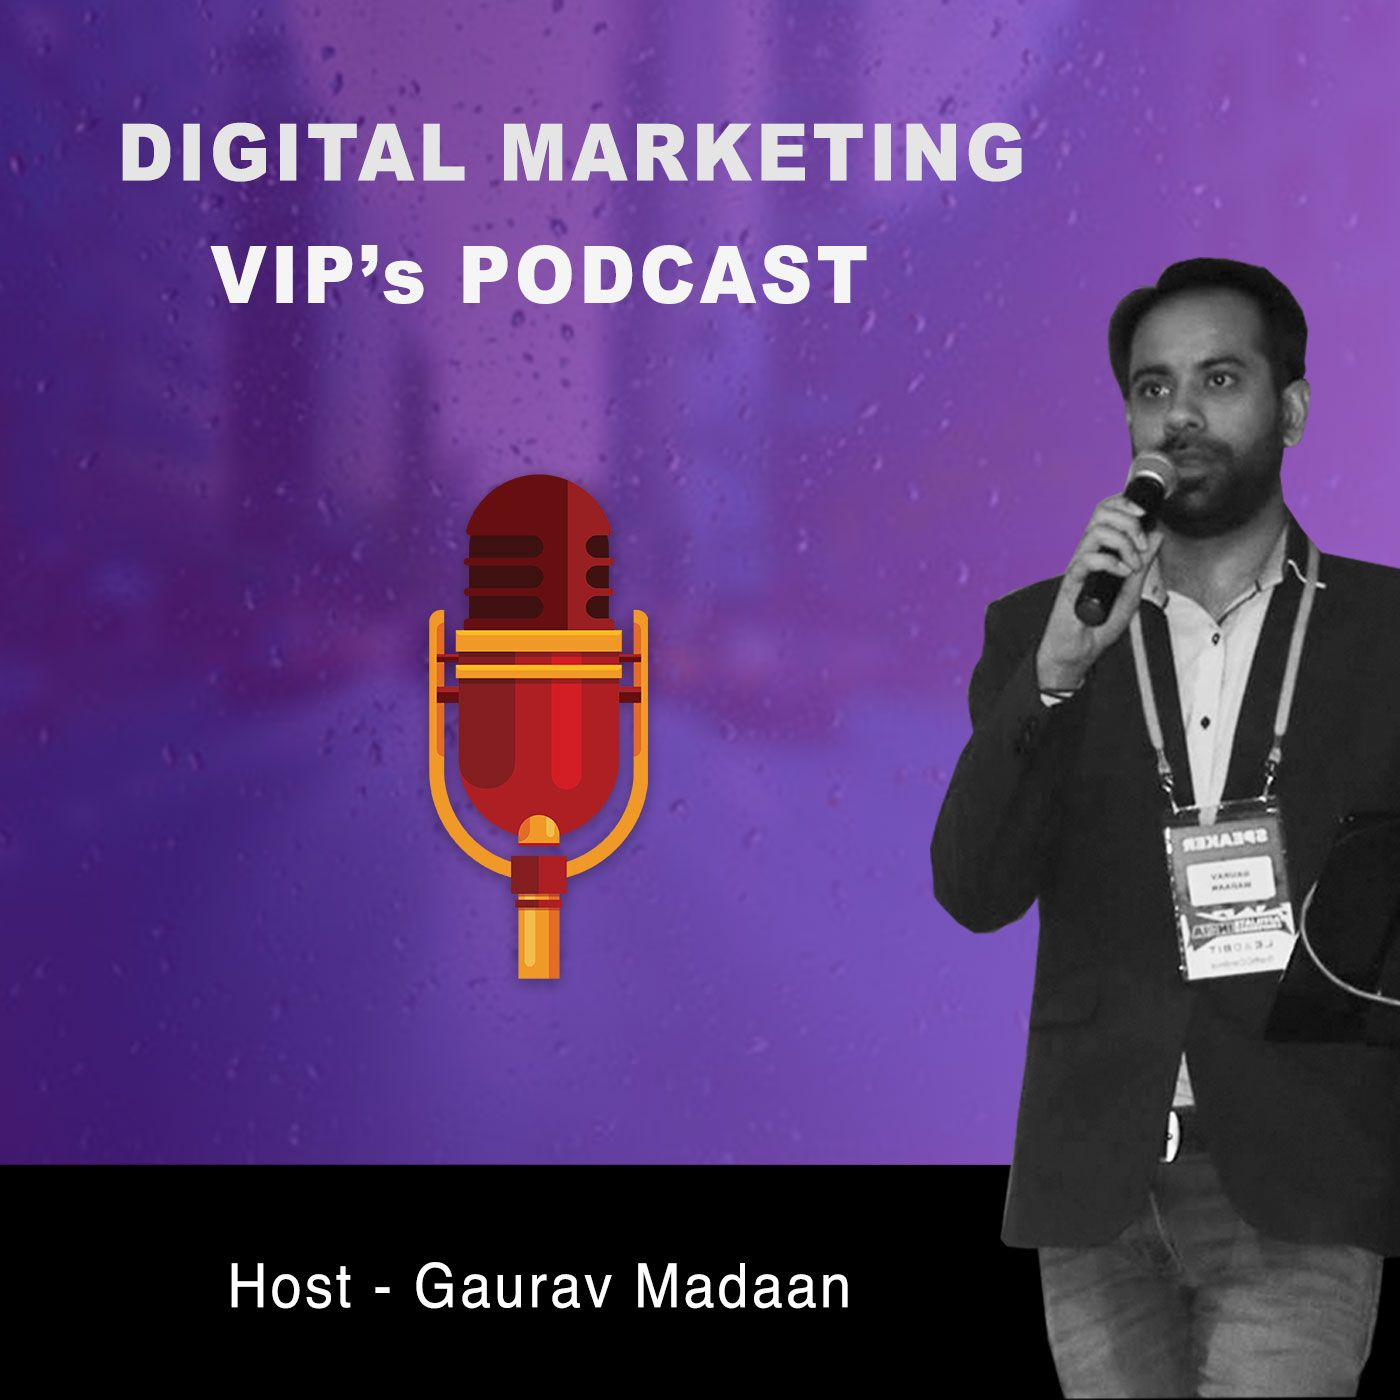 Episode 1 - Getting Started in Digital Marketing